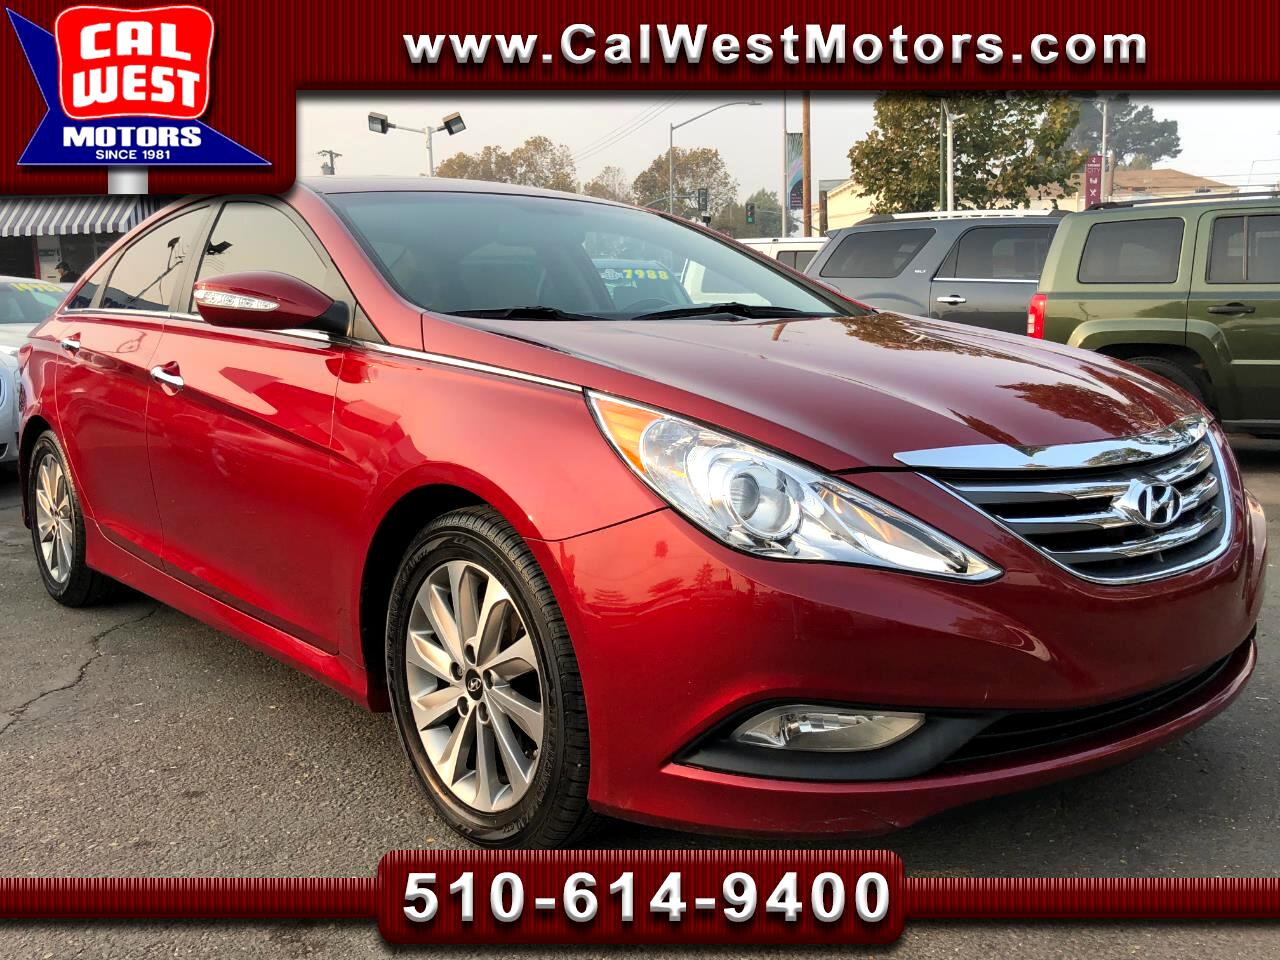 2014 Hyundai Sonata Limited 2.0T Leather Blu2th 1Owner FactoryWarranty